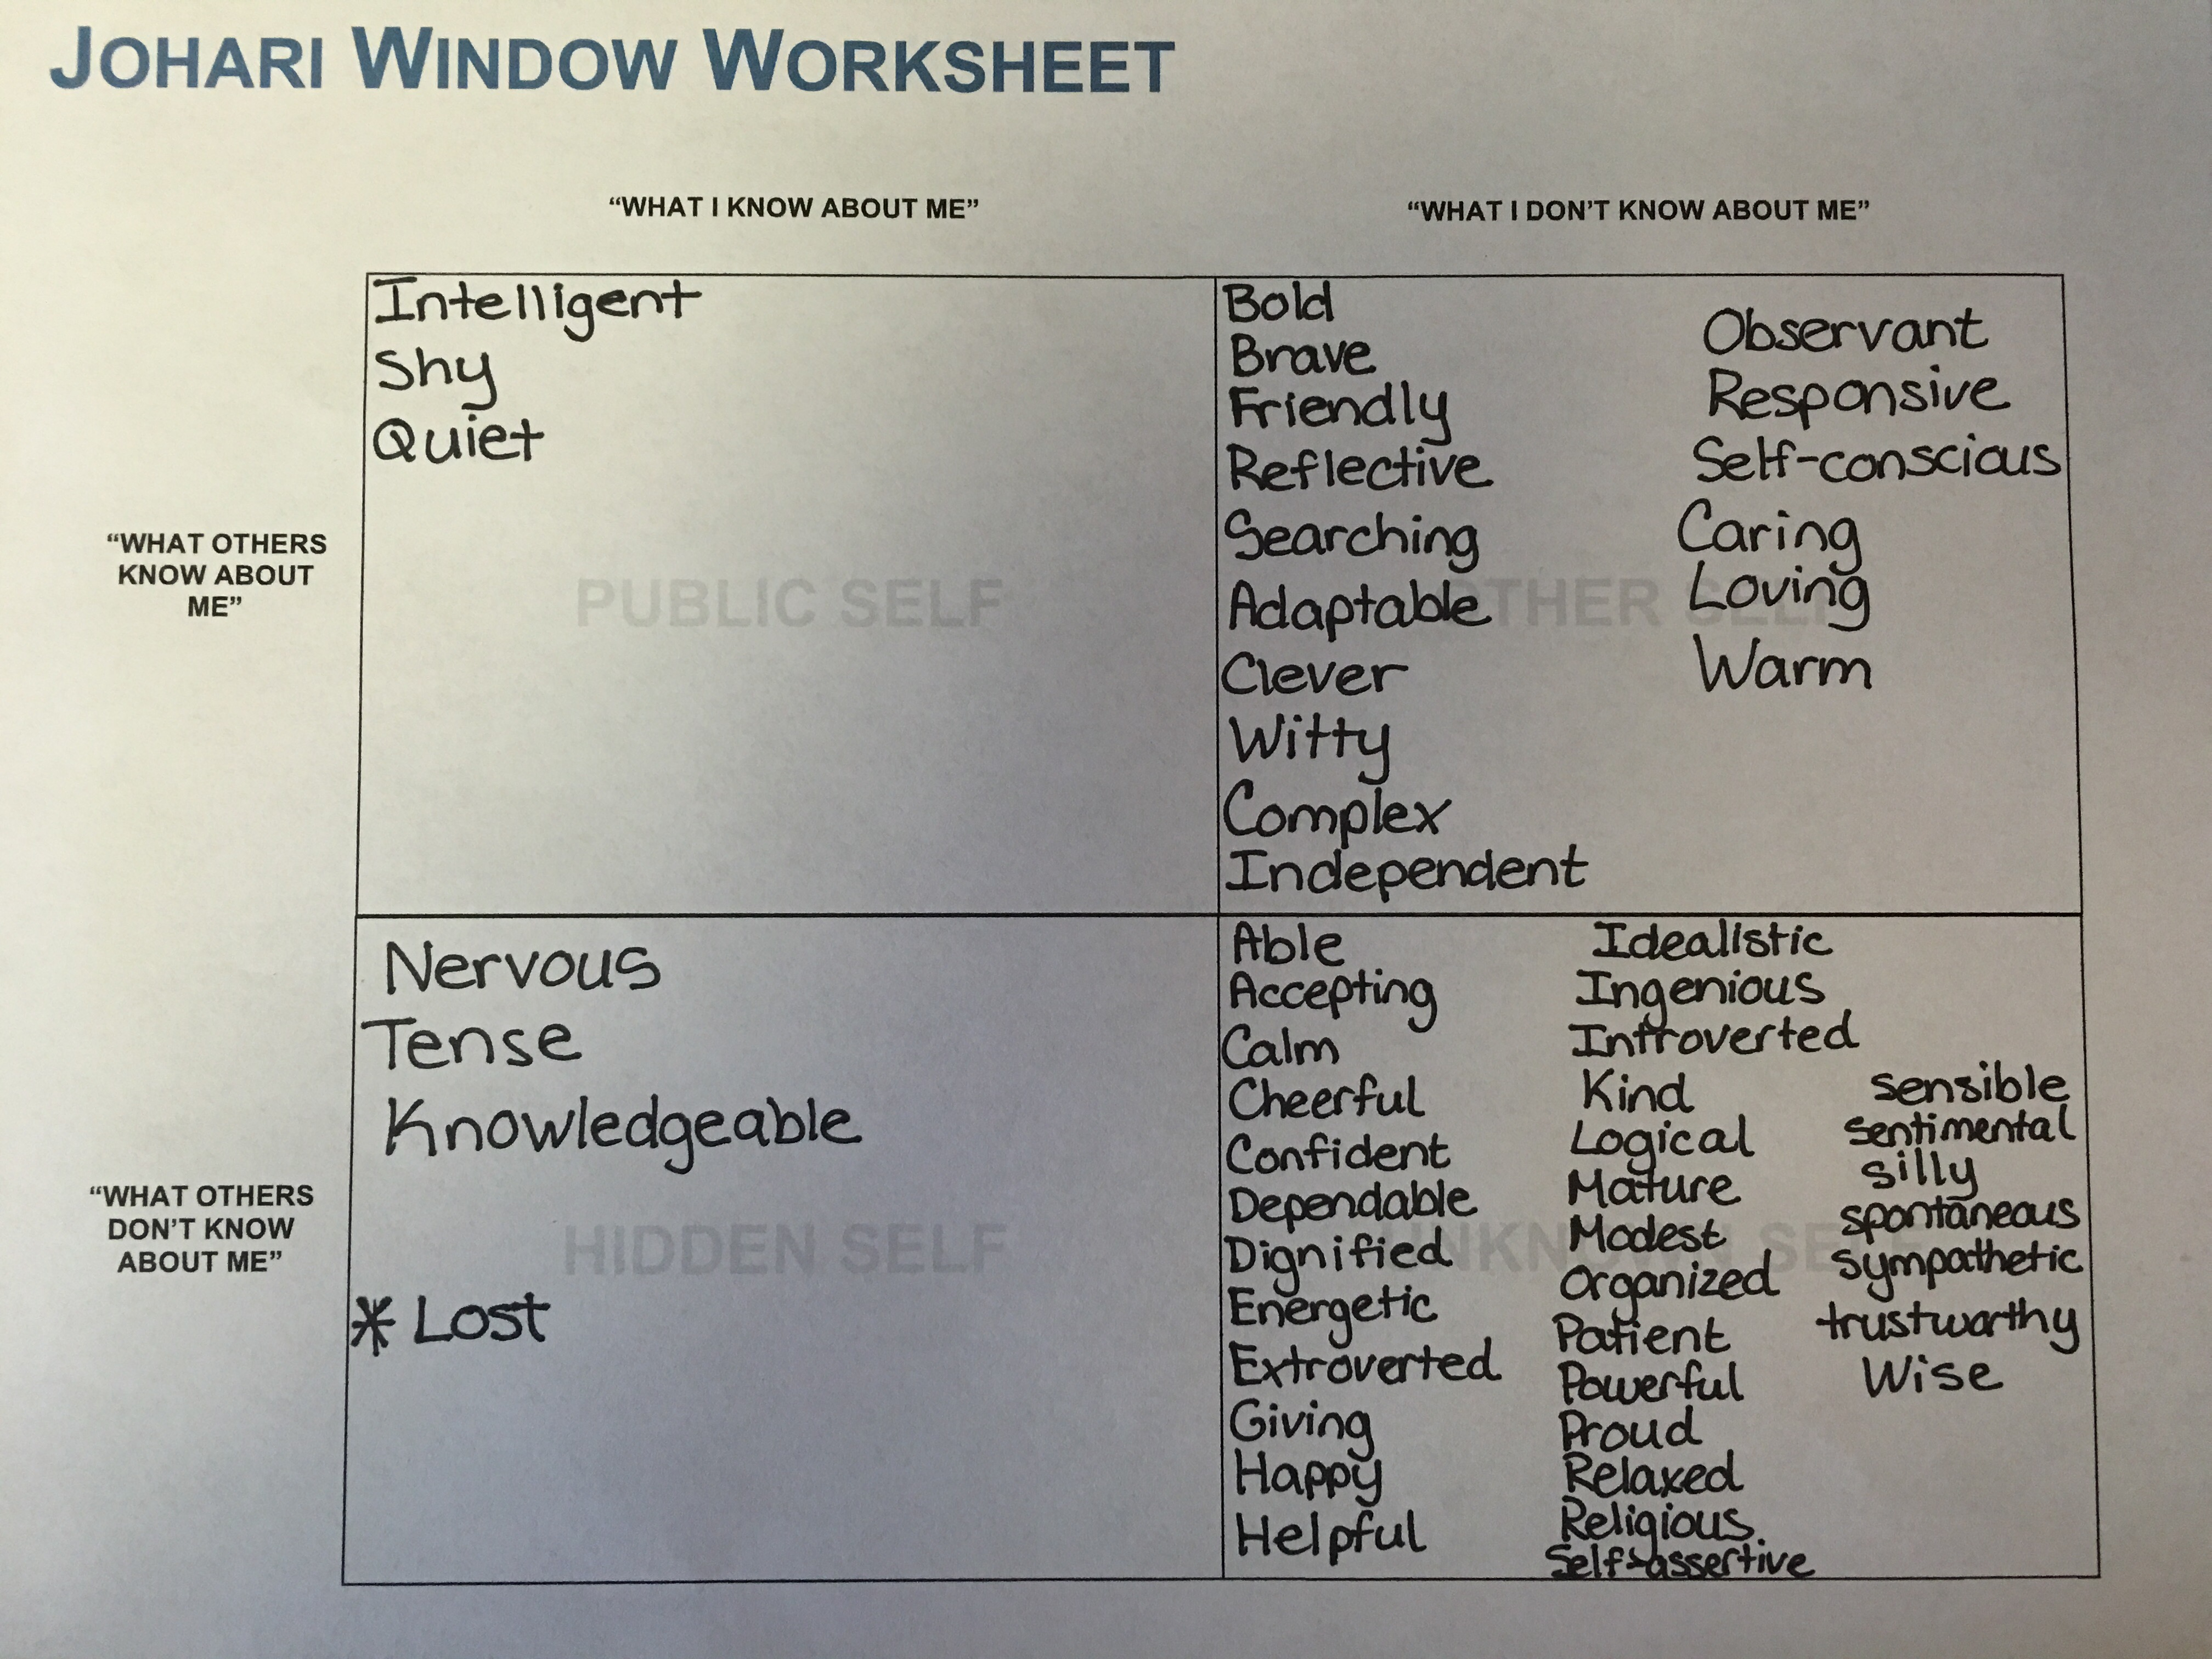 Worksheets Johari Window Worksheet complex life without hurt not surprisingly most people chose intelligent at least i was right about something me couldnt argue with that